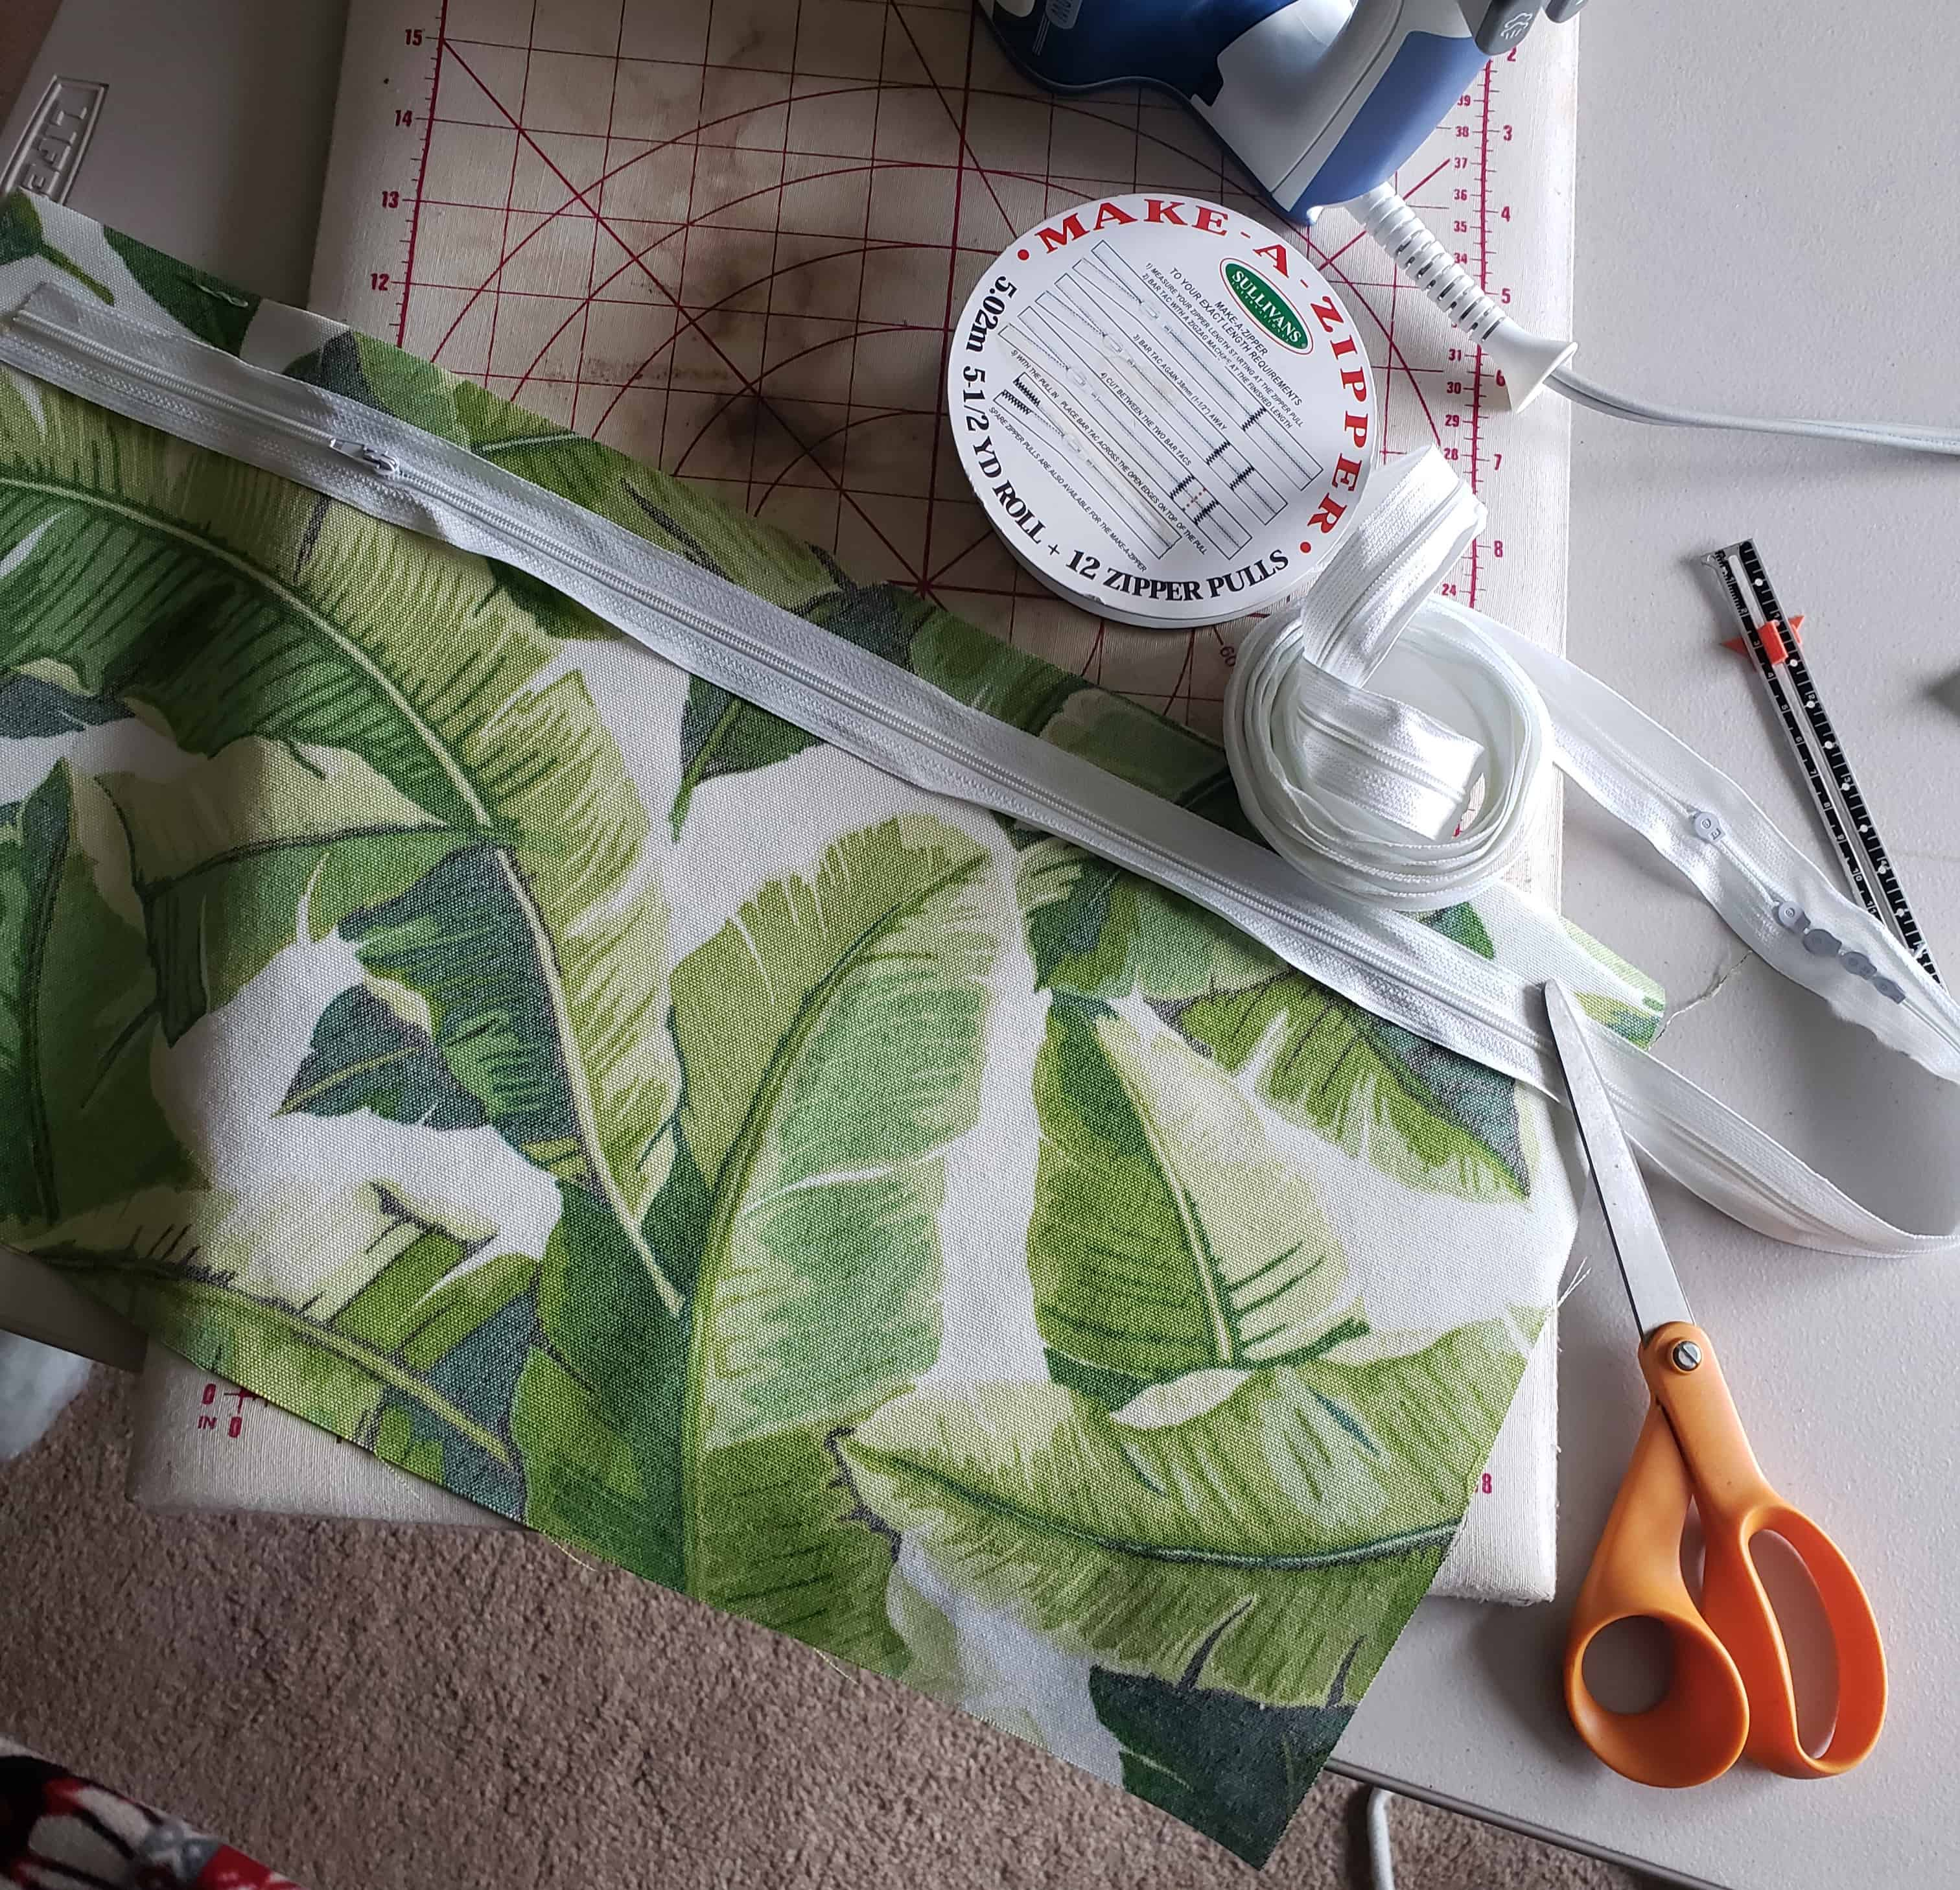 strethed out Make A Zipper tape